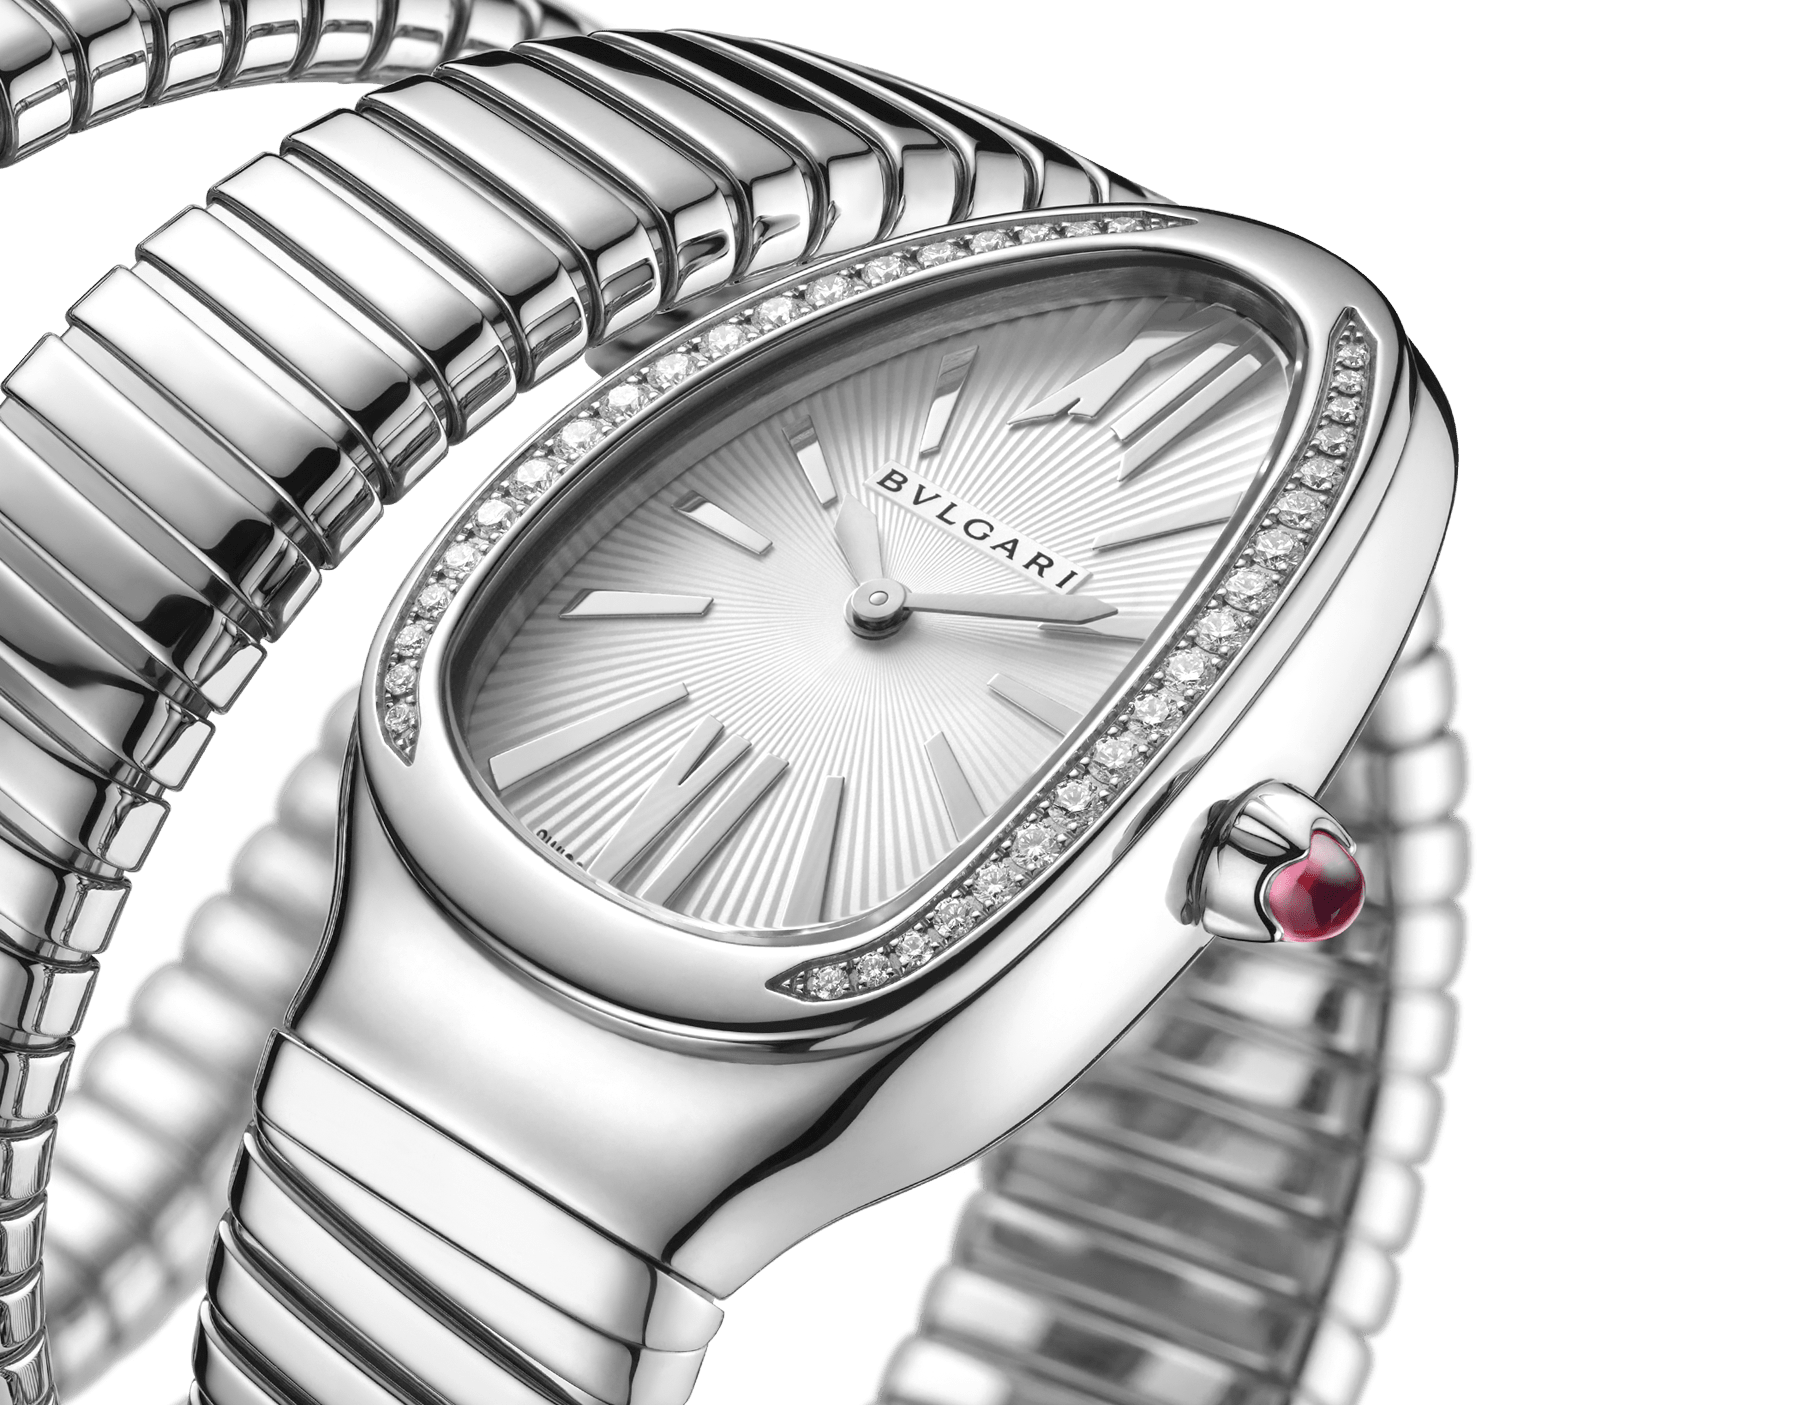 Serpenti Tubogas double spiral watch in stainless steel case and bracelet, bezel set with brilliant cut diamonds and silver opaline dial. 101910 image 3